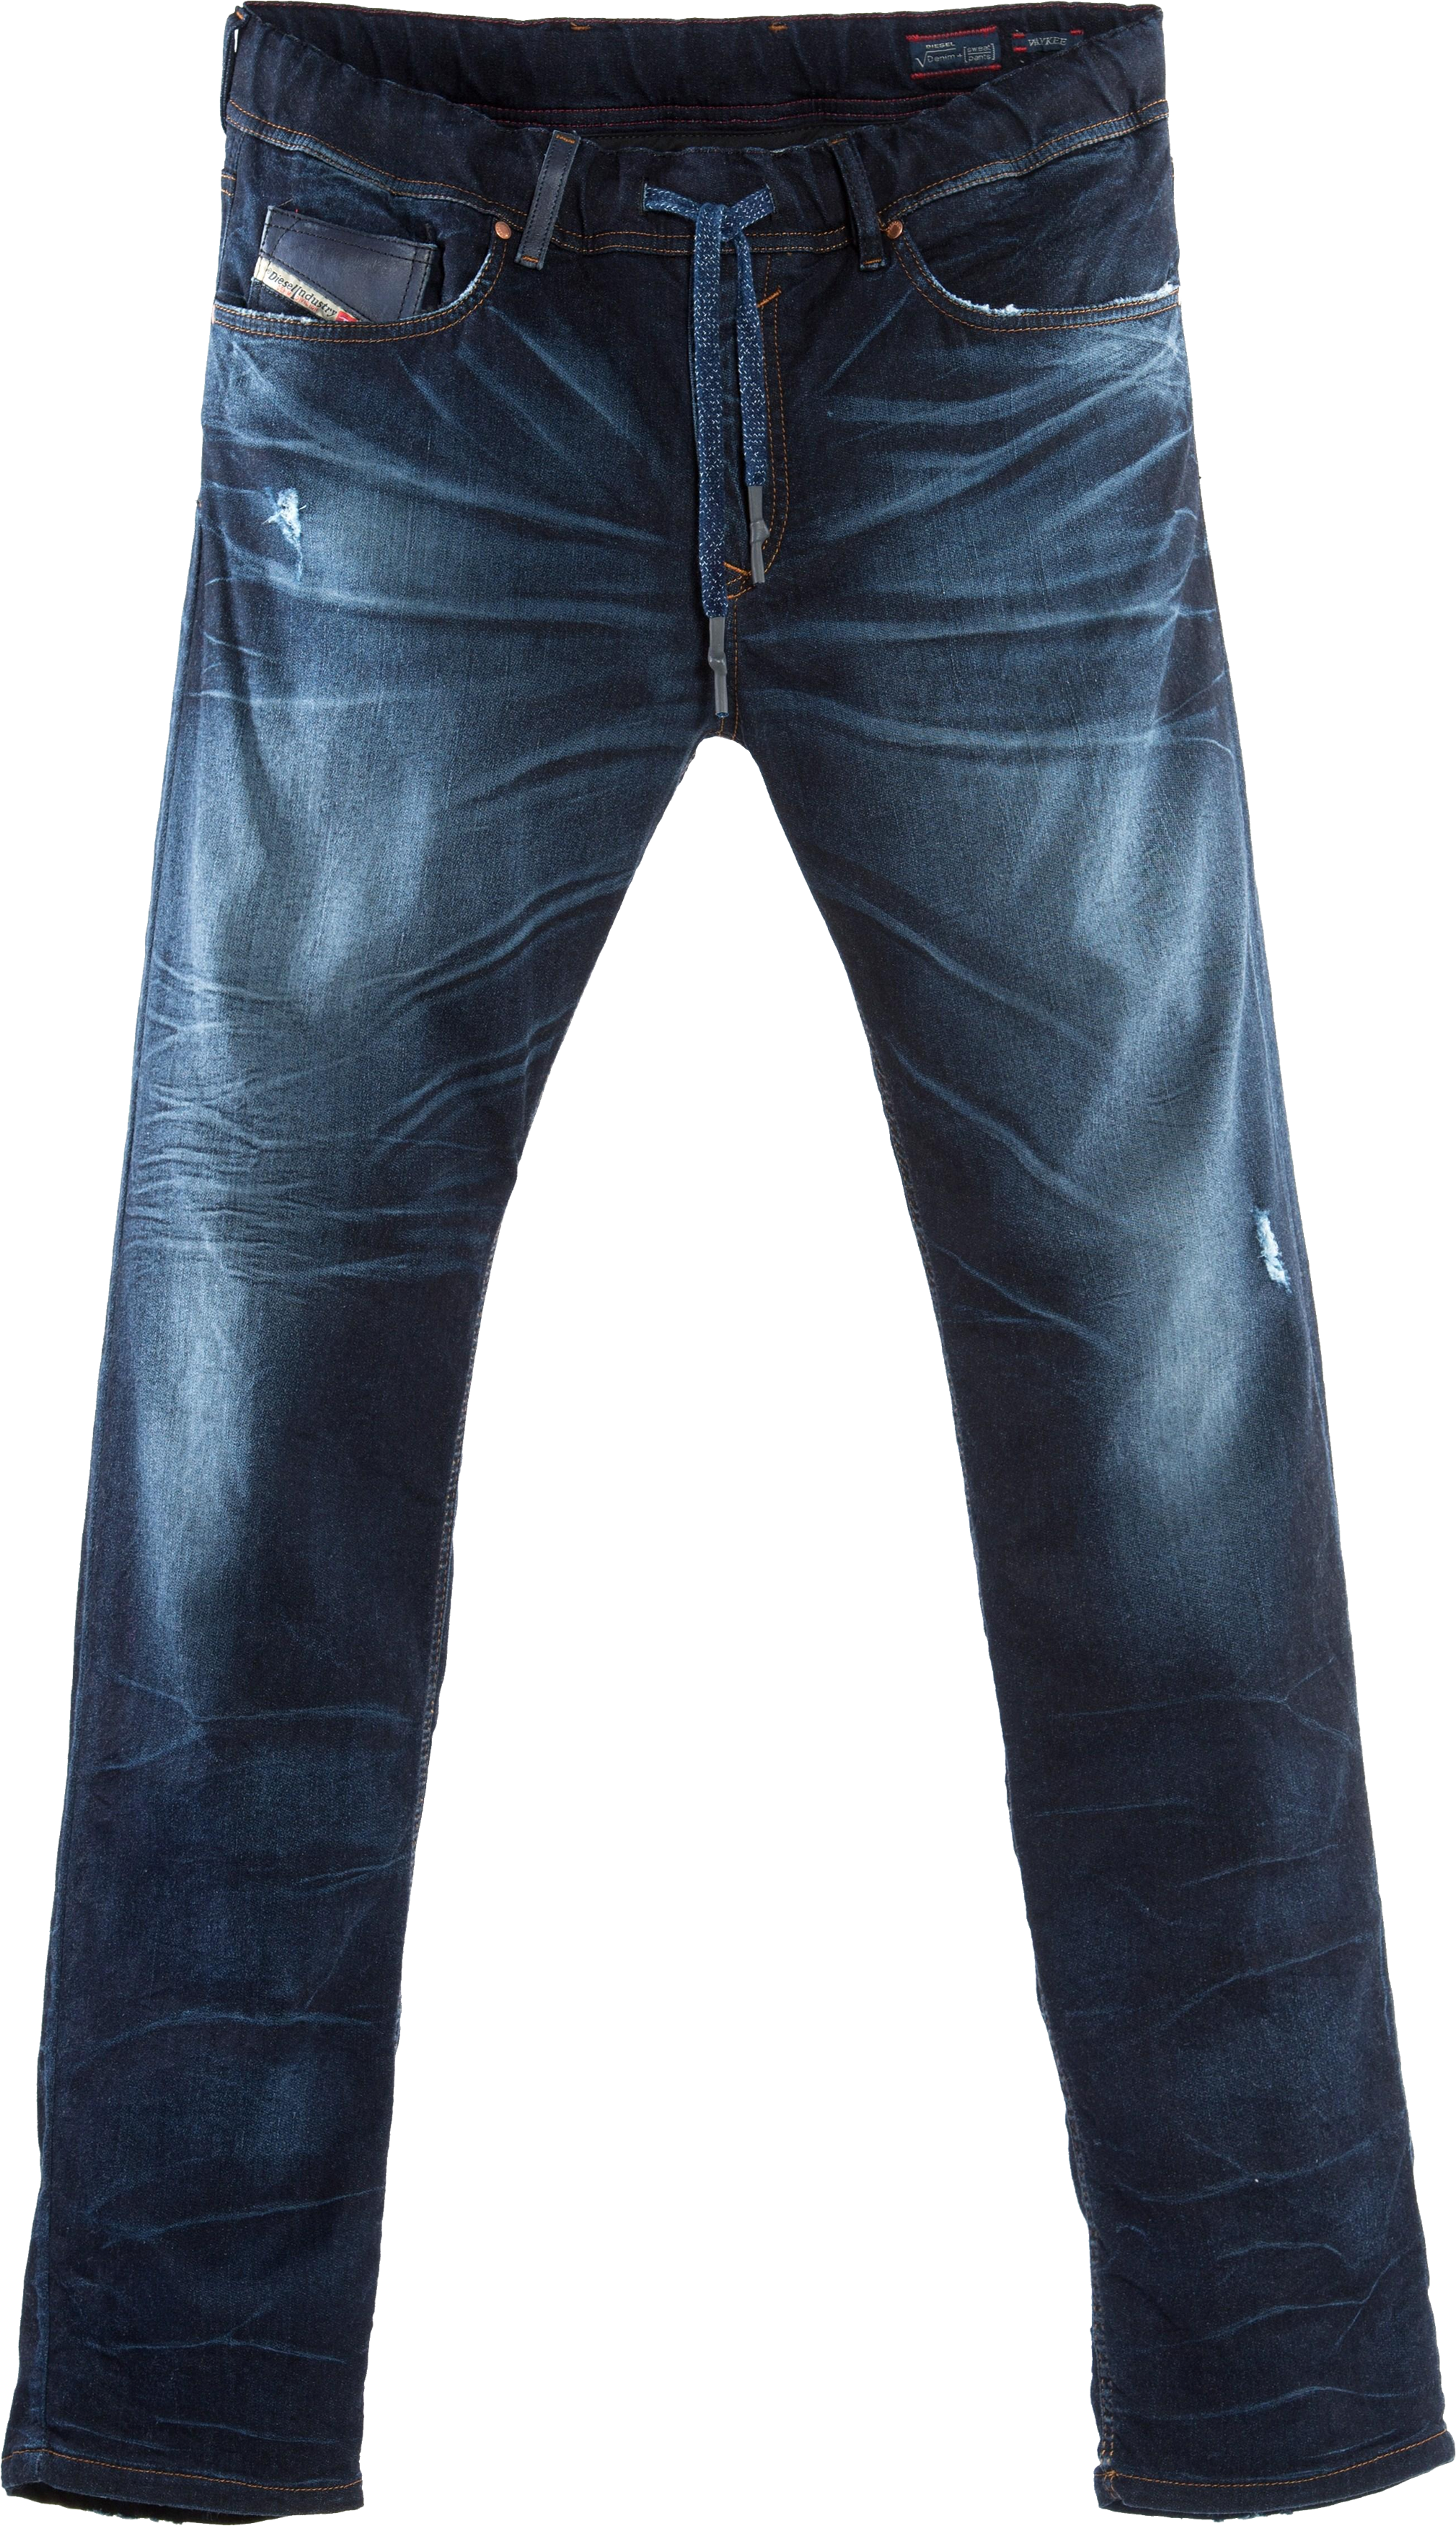 Jeans PNG - 16038